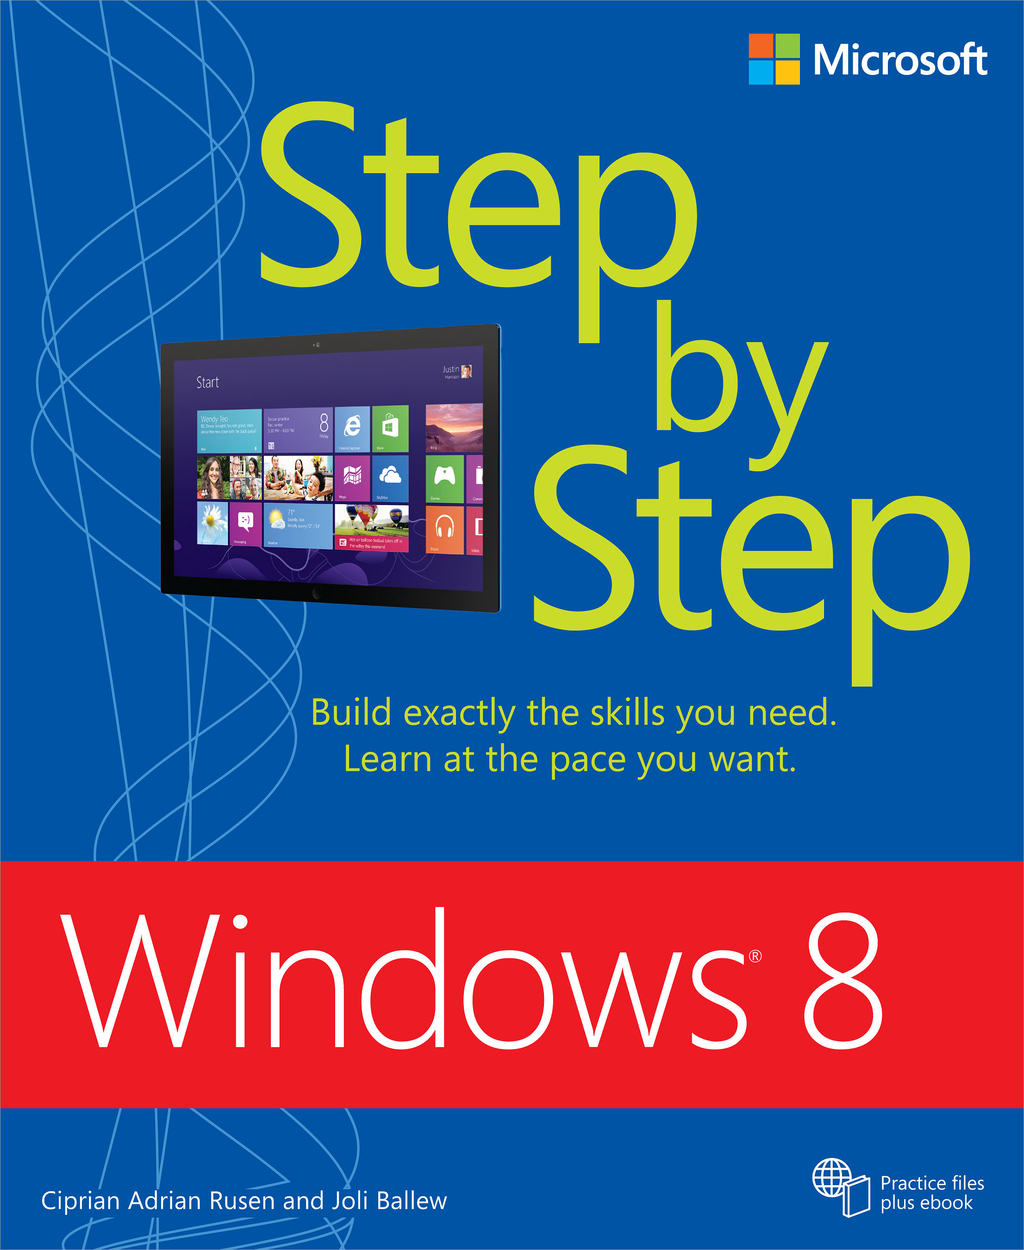 Windows 8 Step by Step By: Ciprian Adrian Rusen,Joli Ballew